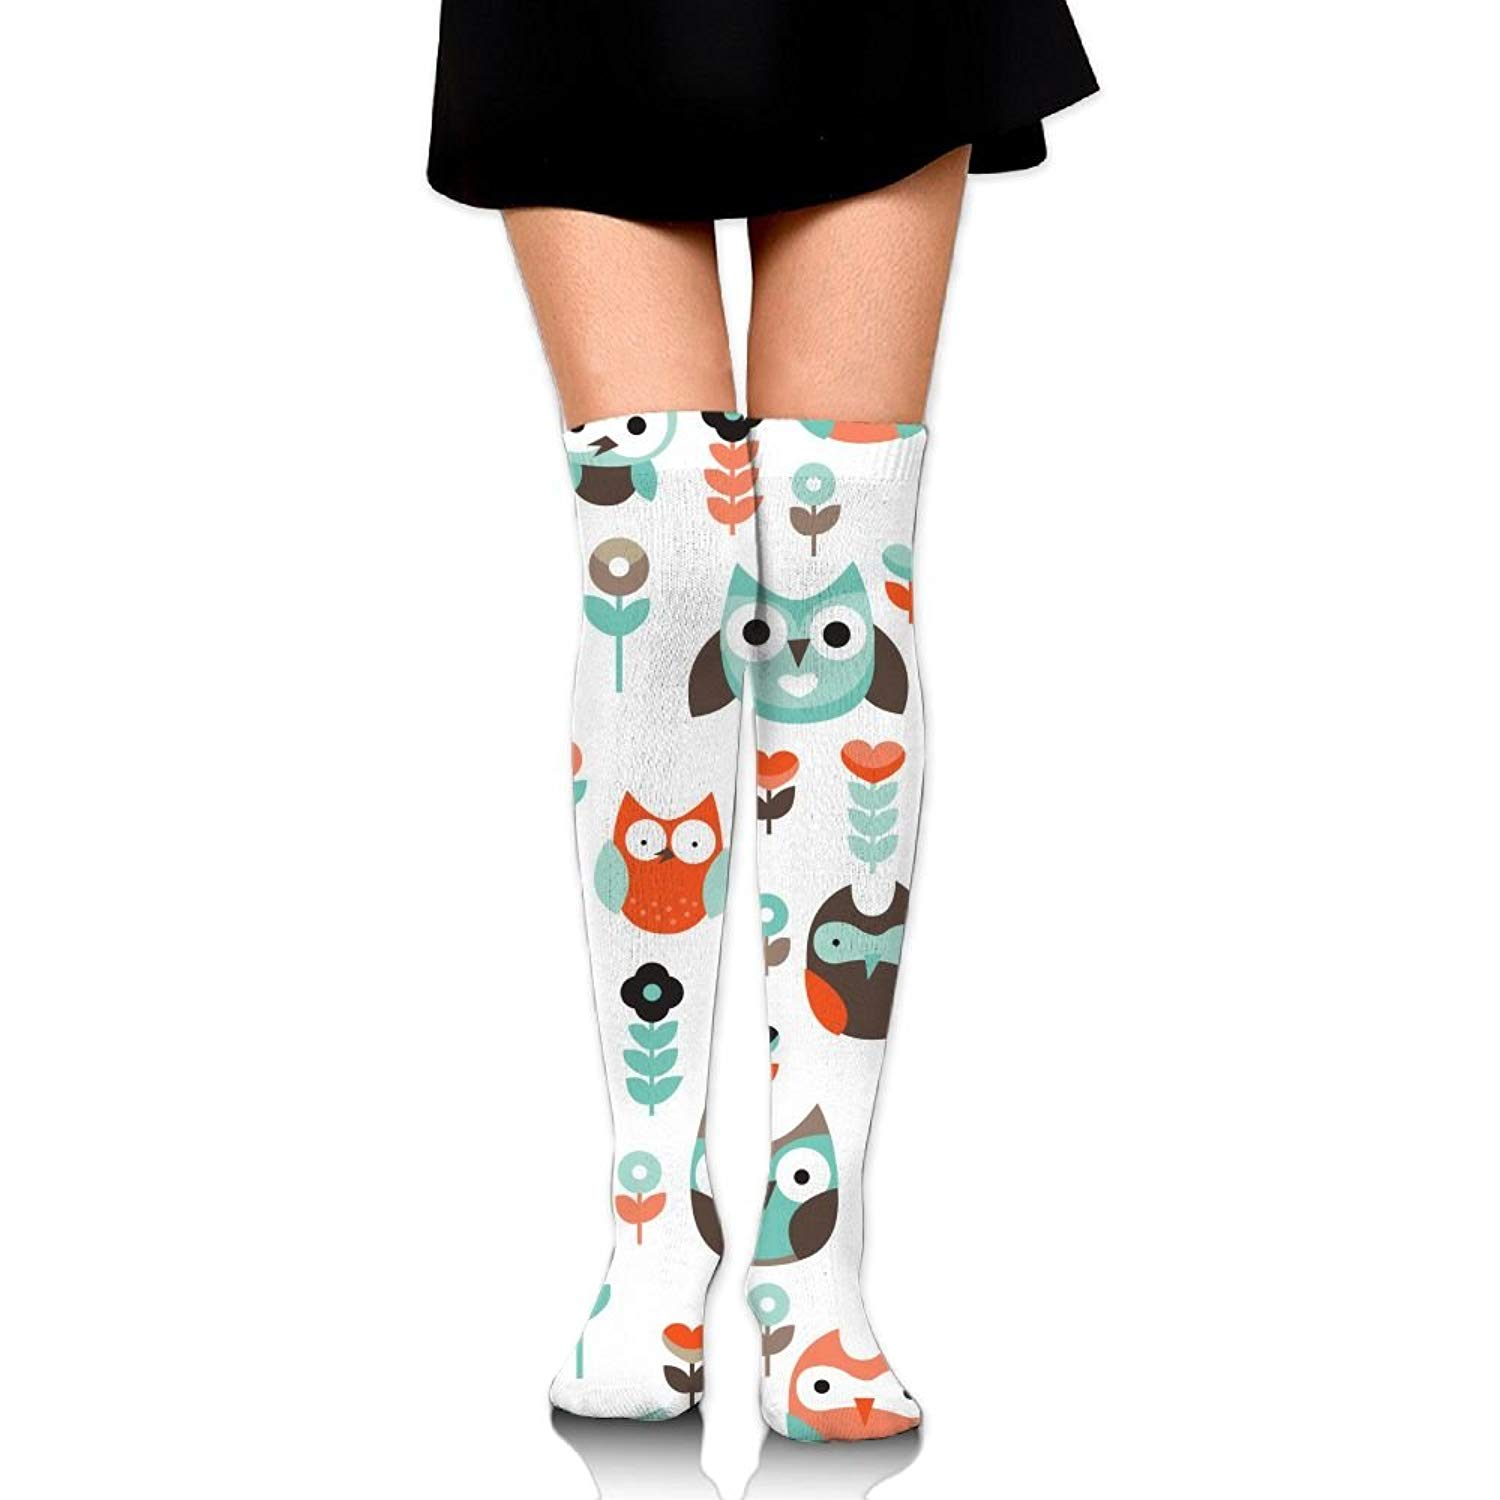 Zaqxsw Owl Bird Women Cool Thigh High Socks Thermal Socks For Girls